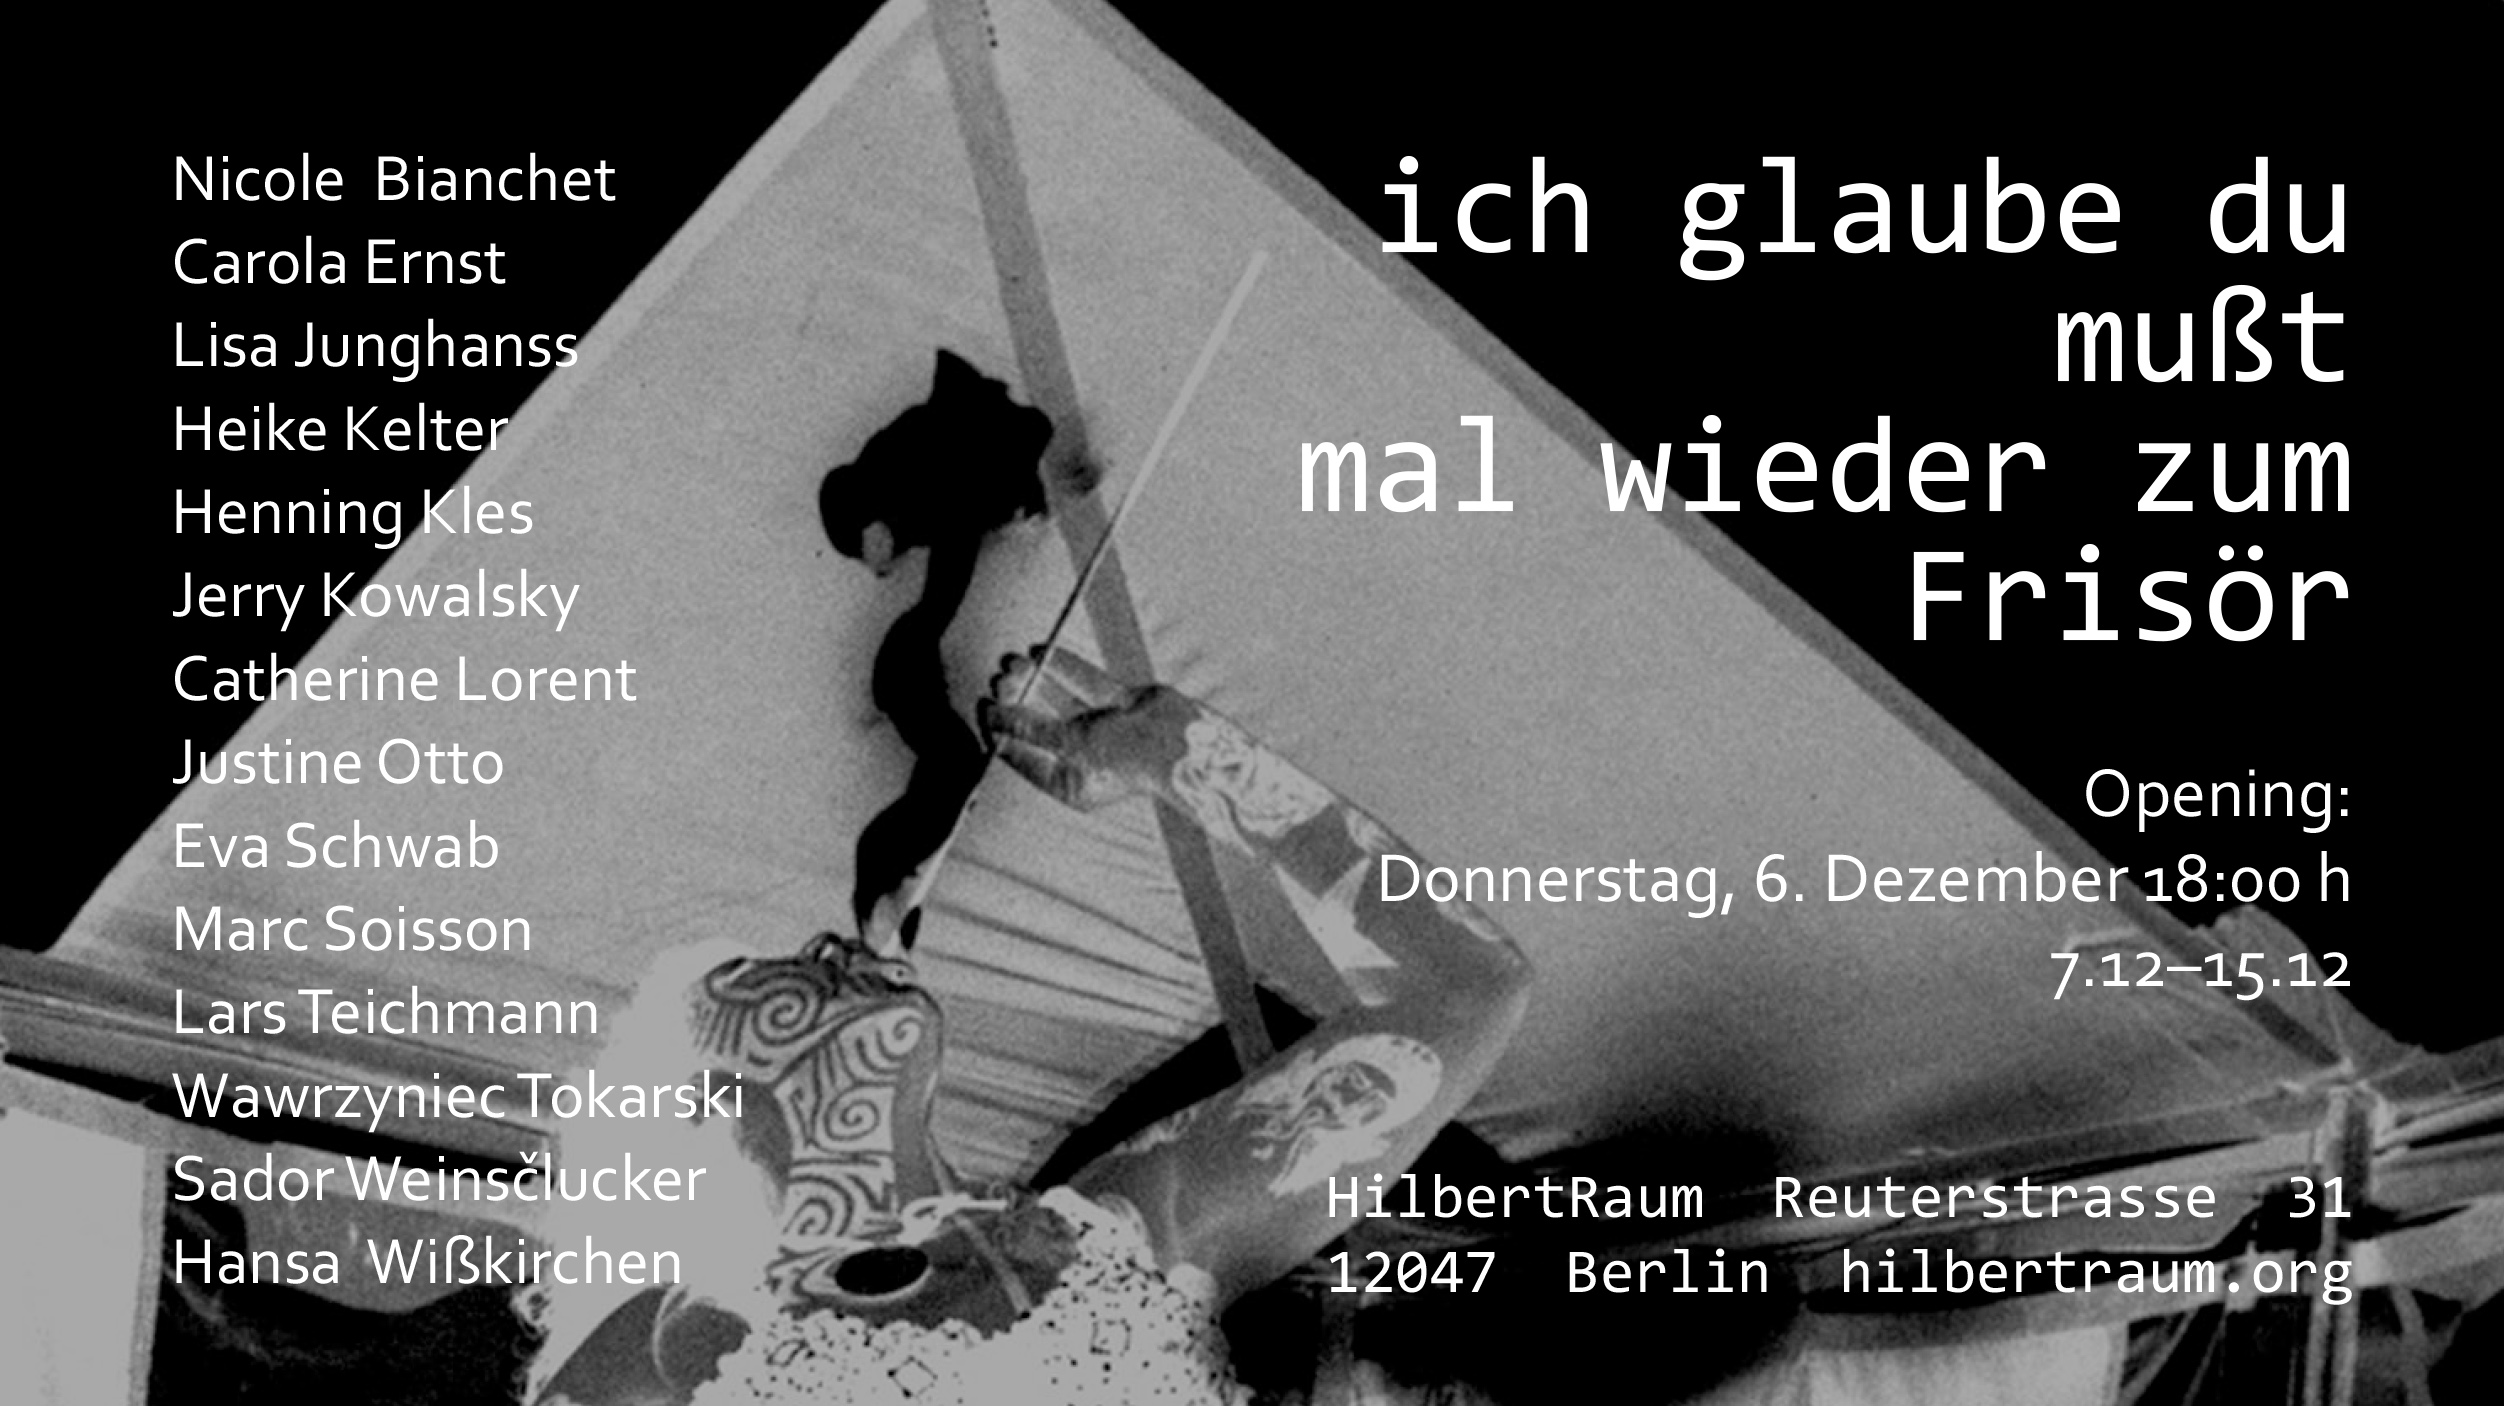 Wawrzyniec Tokarski: Group show at HilbertRaum Berlin